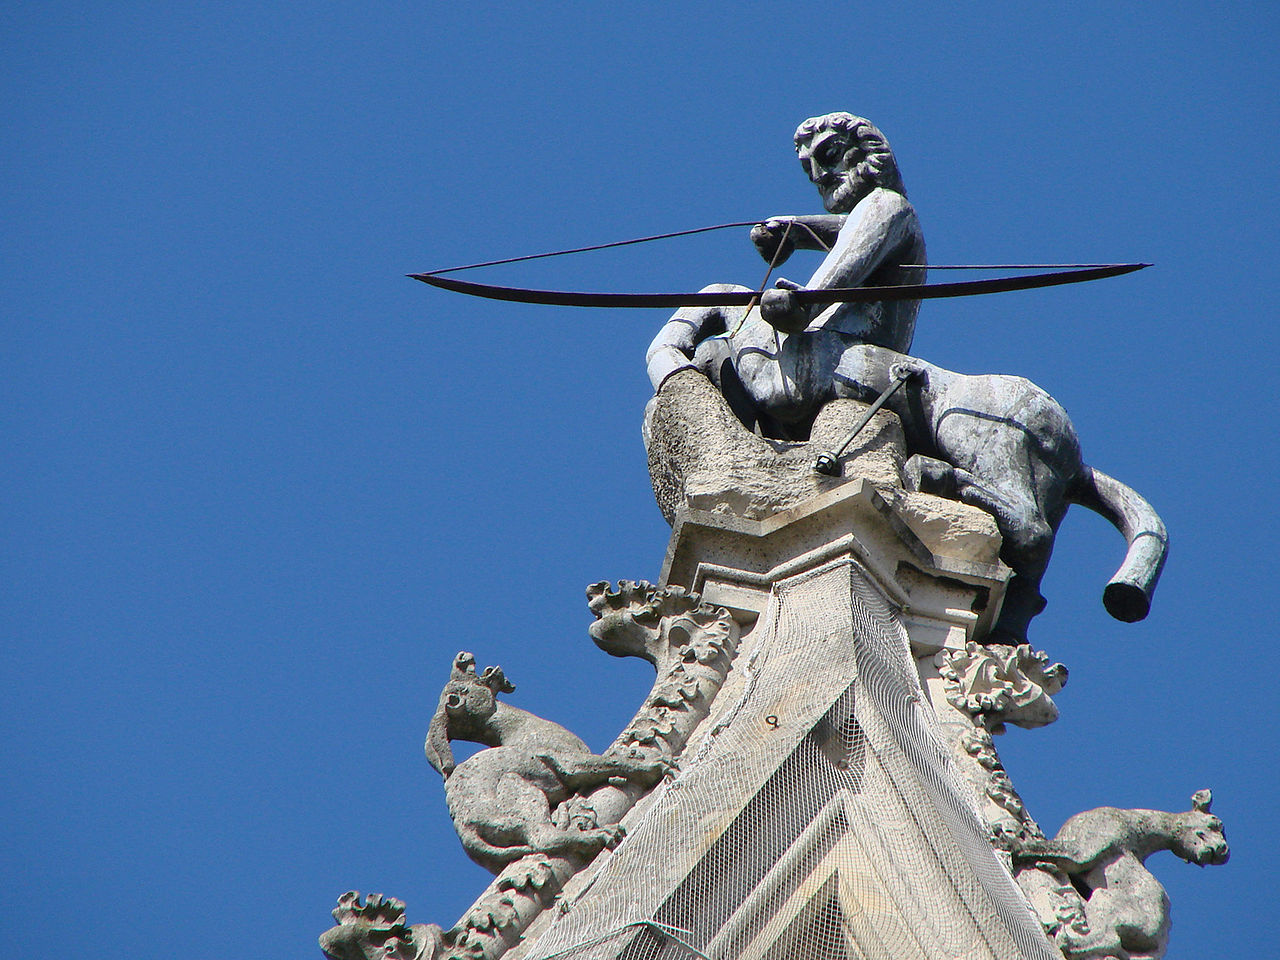 A sculpture of a Sagittarius atop the south transept of the cathedral in Reims (photo by Vassil, via Wikimedia Commons)